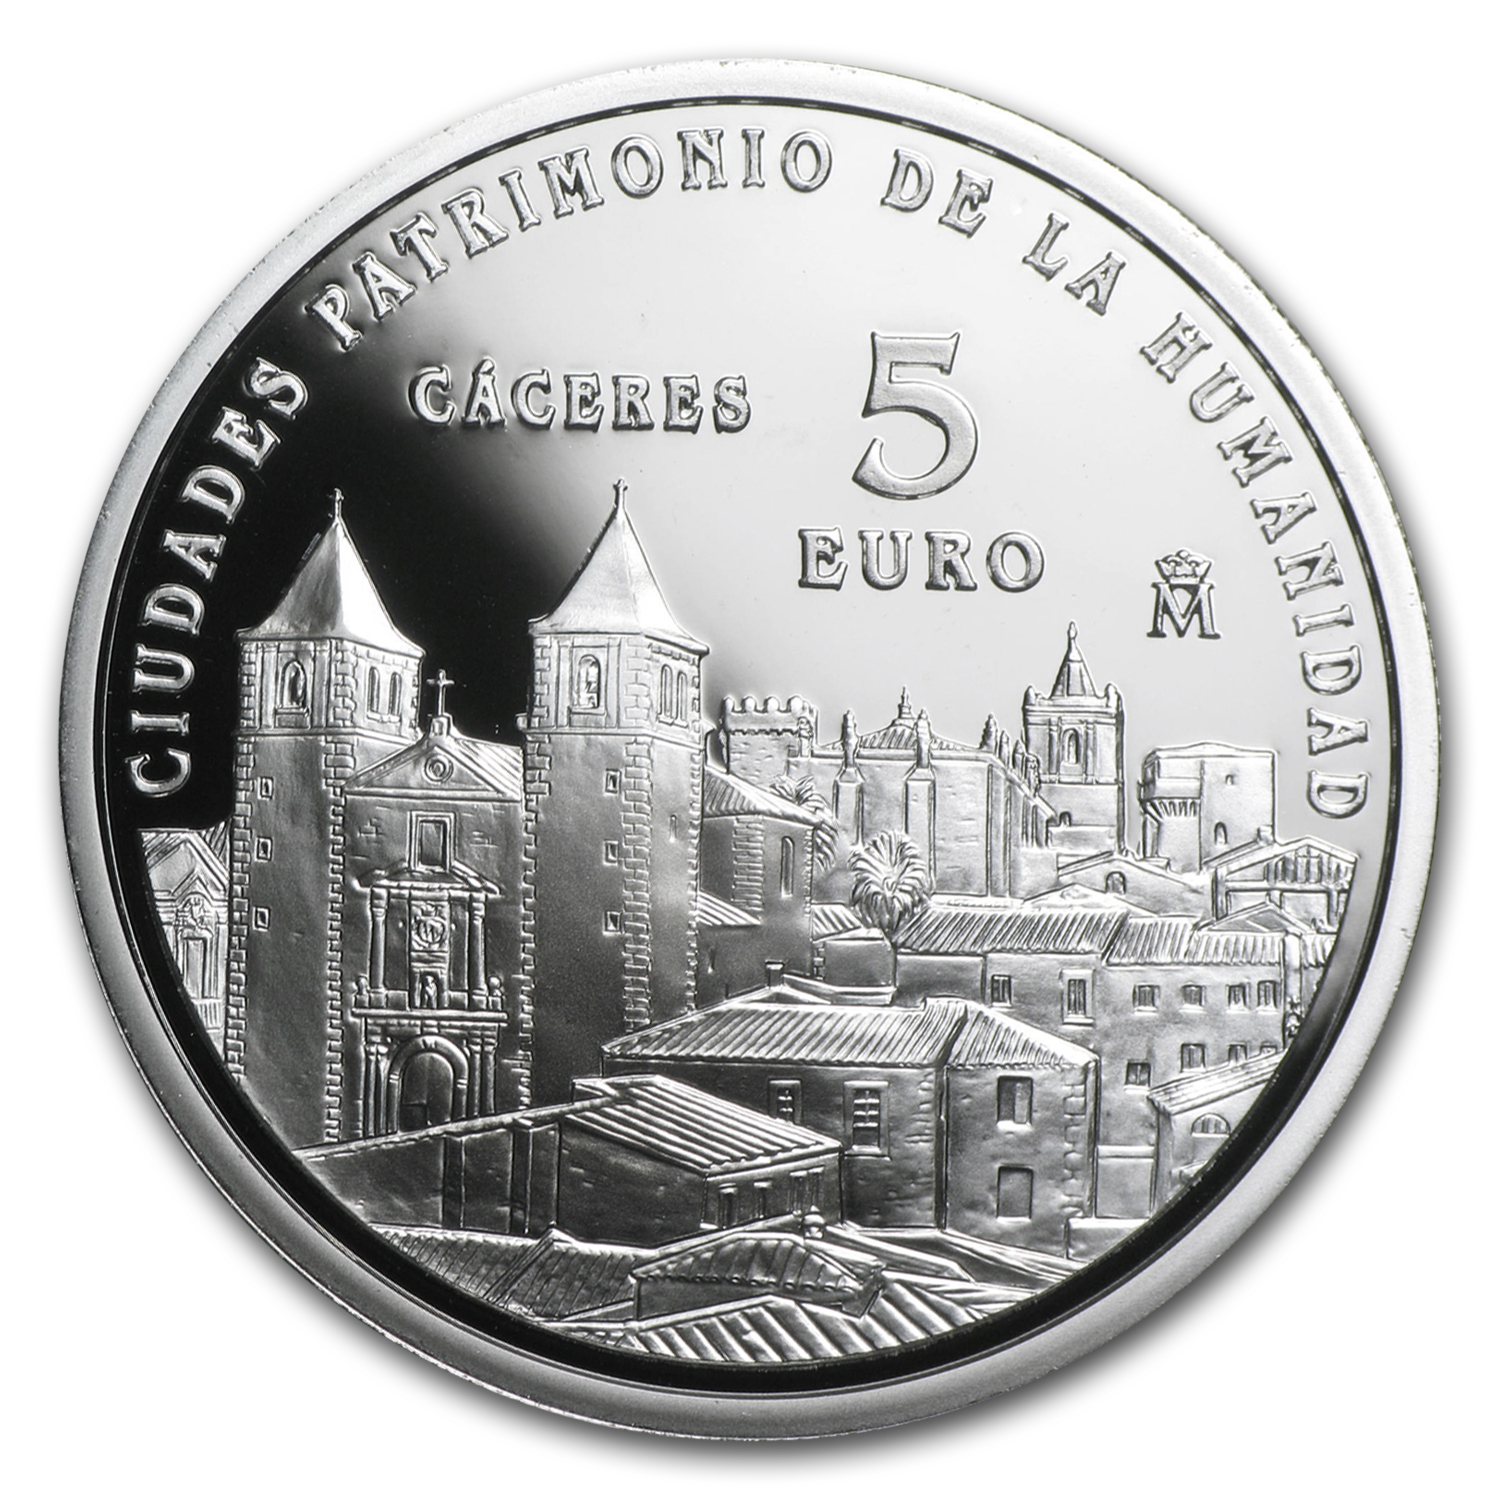 2014 Proof Silver €5 UNESCO Càceres